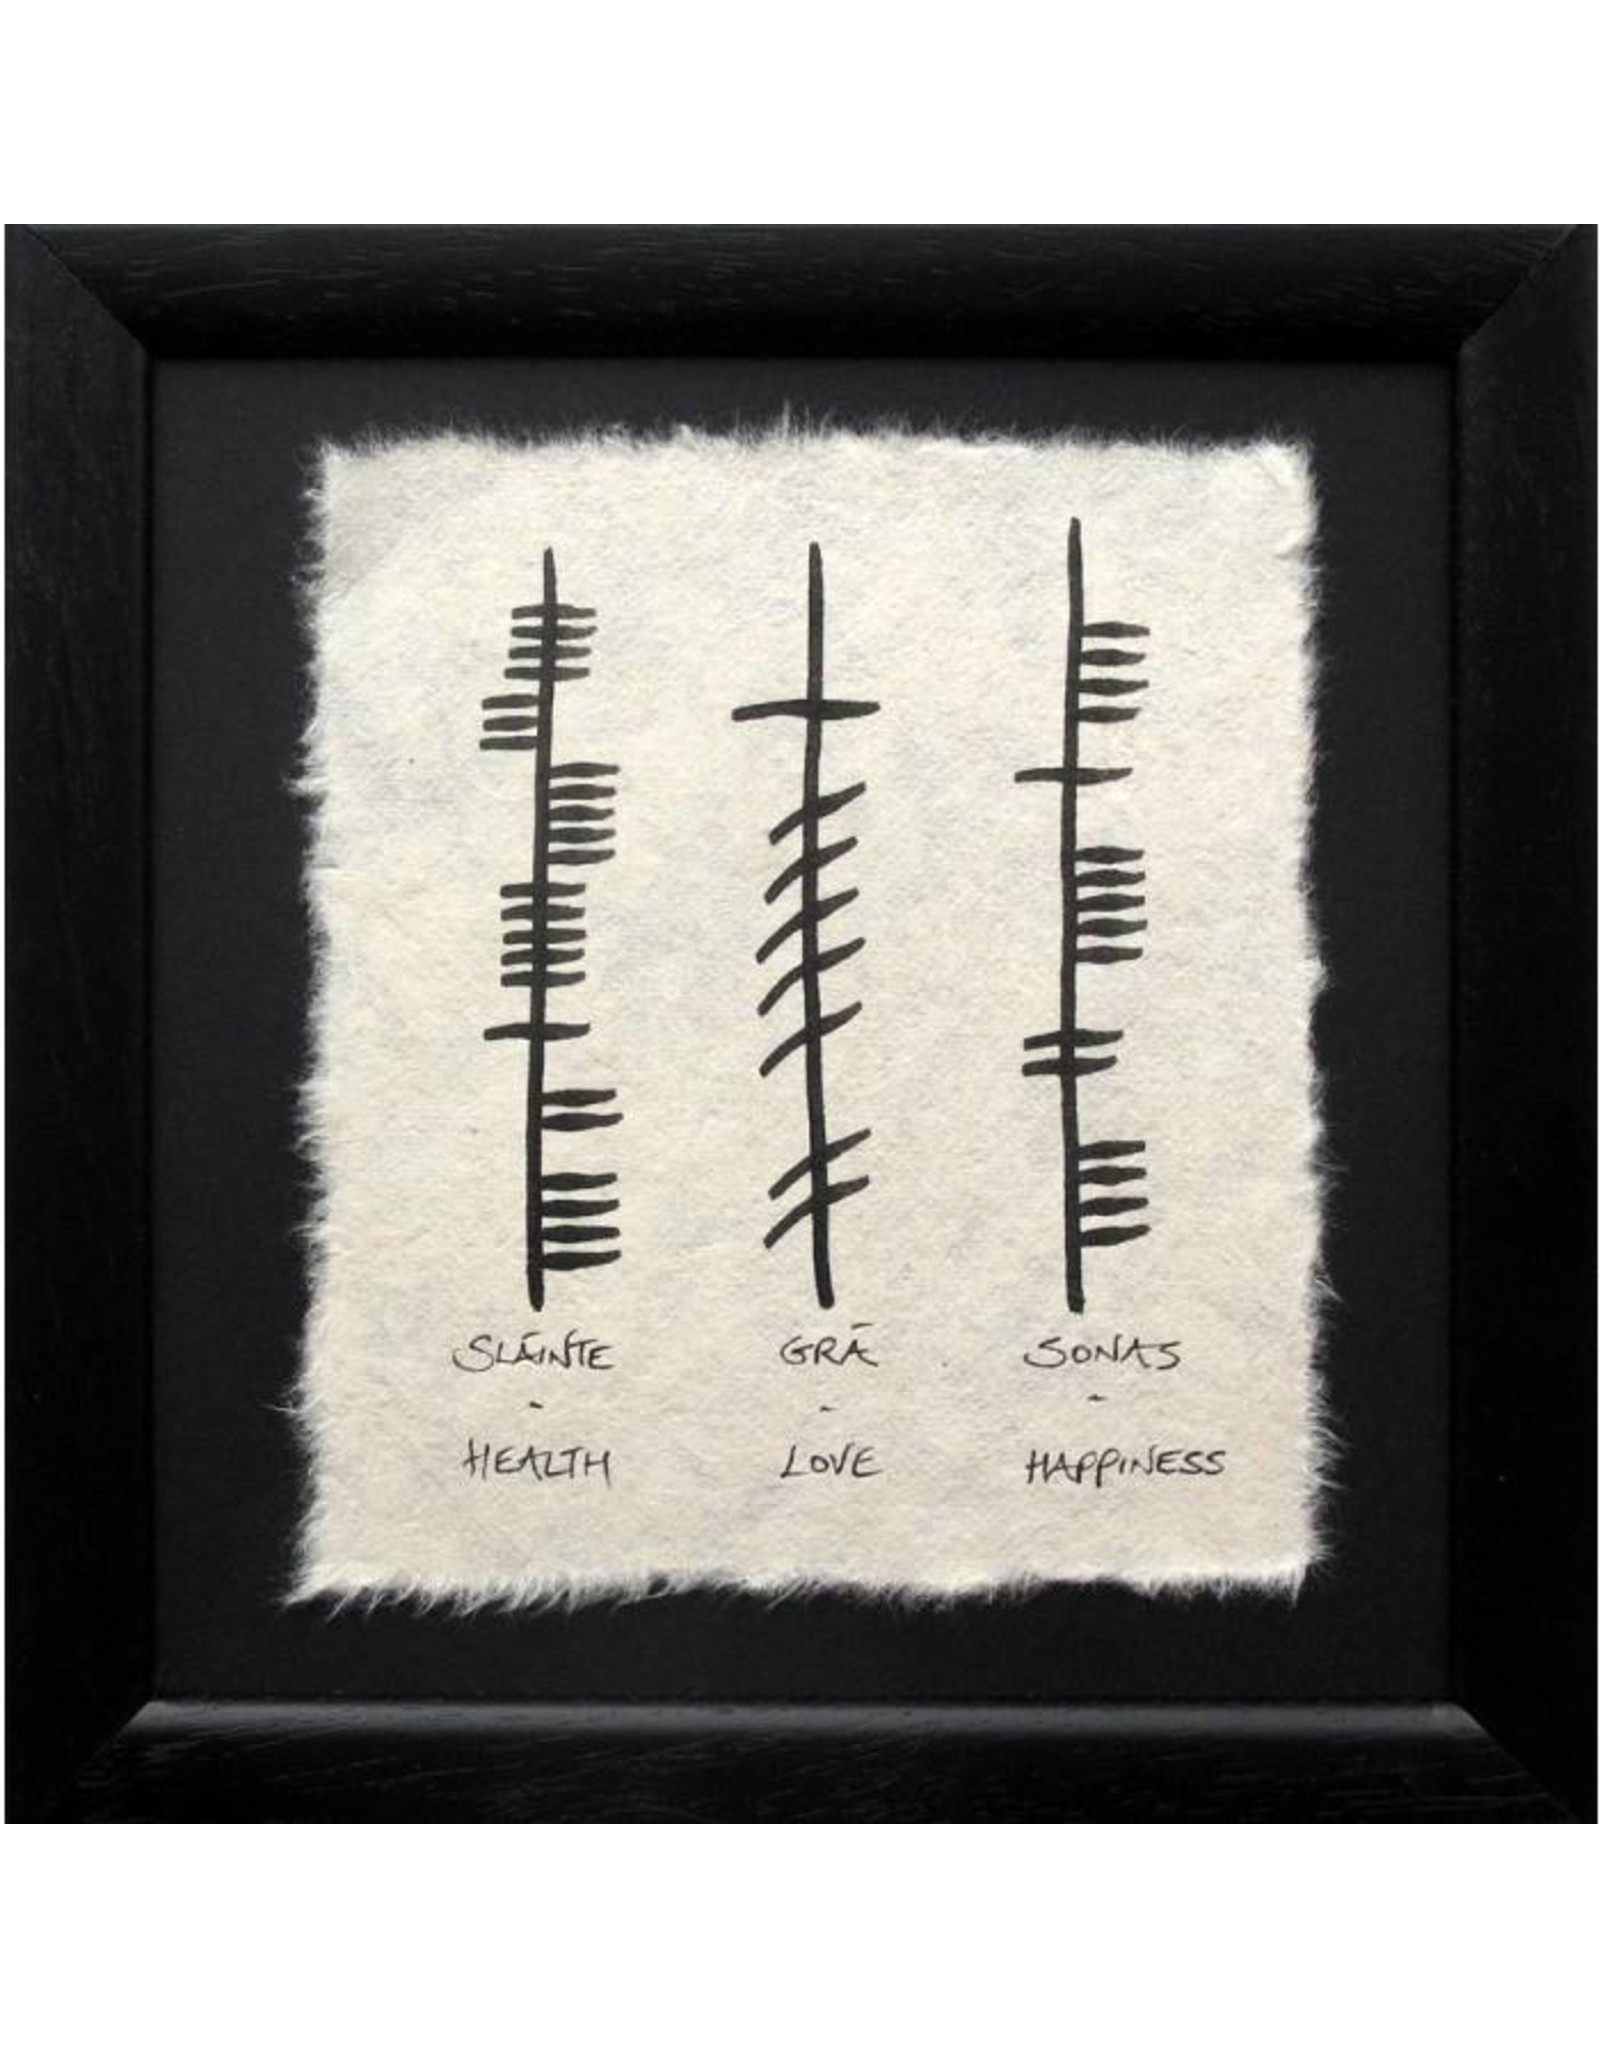 Ogham Wishes Framed Ogham Triple: Health Love Happiness